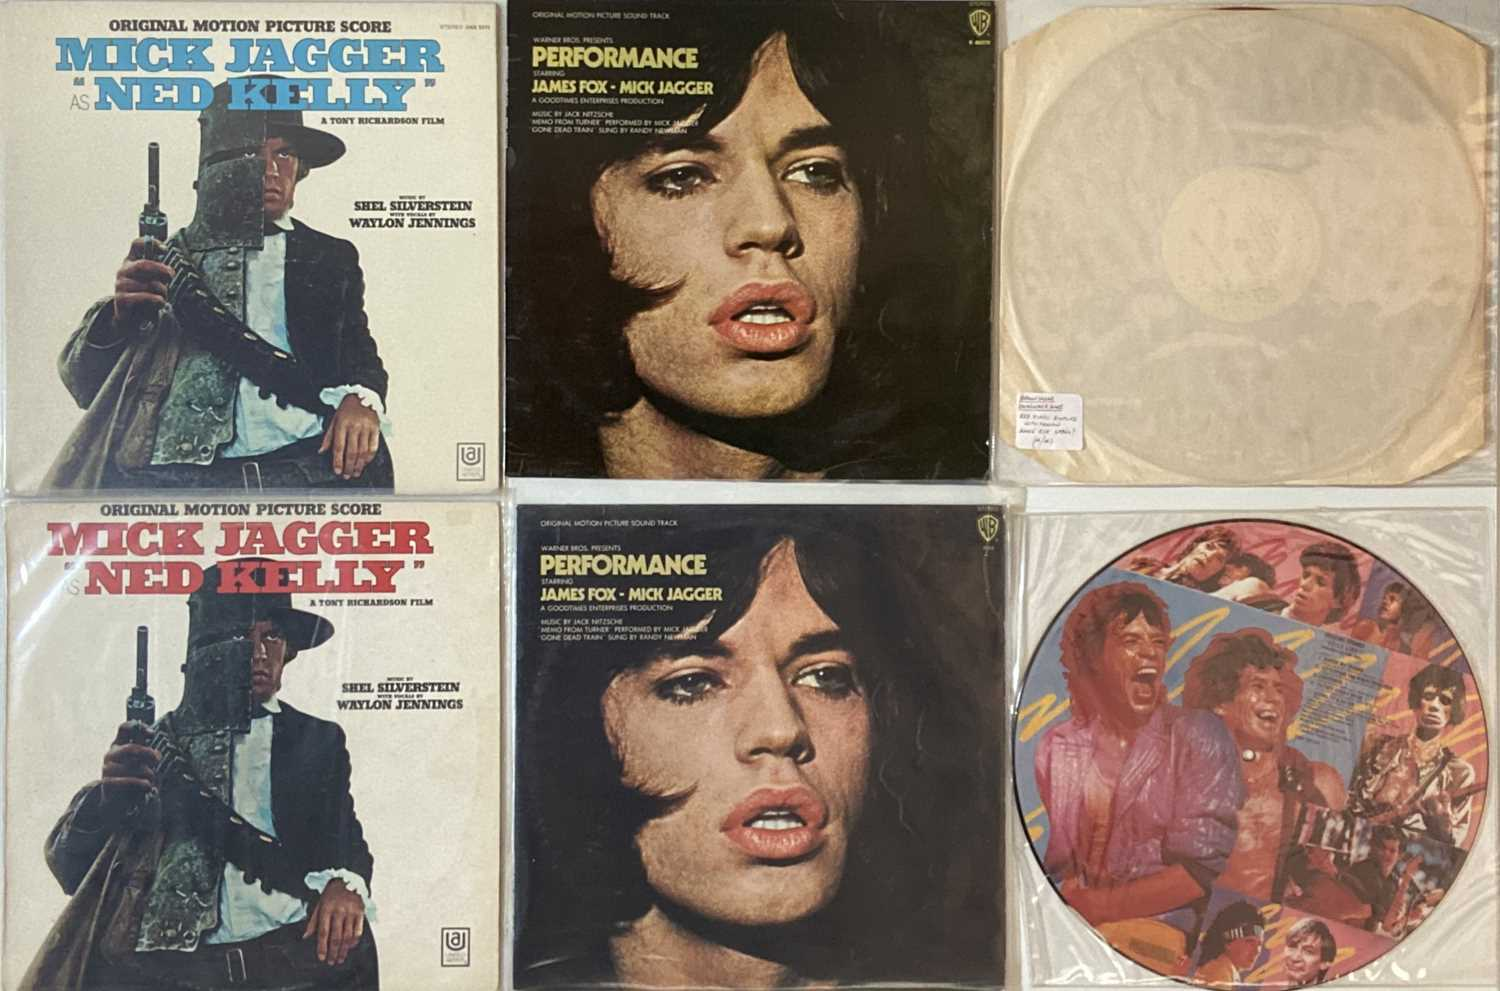 THE ROLLING STONES - PRIVATE LPs PLUS SOLO RELEASES - Image 2 of 3